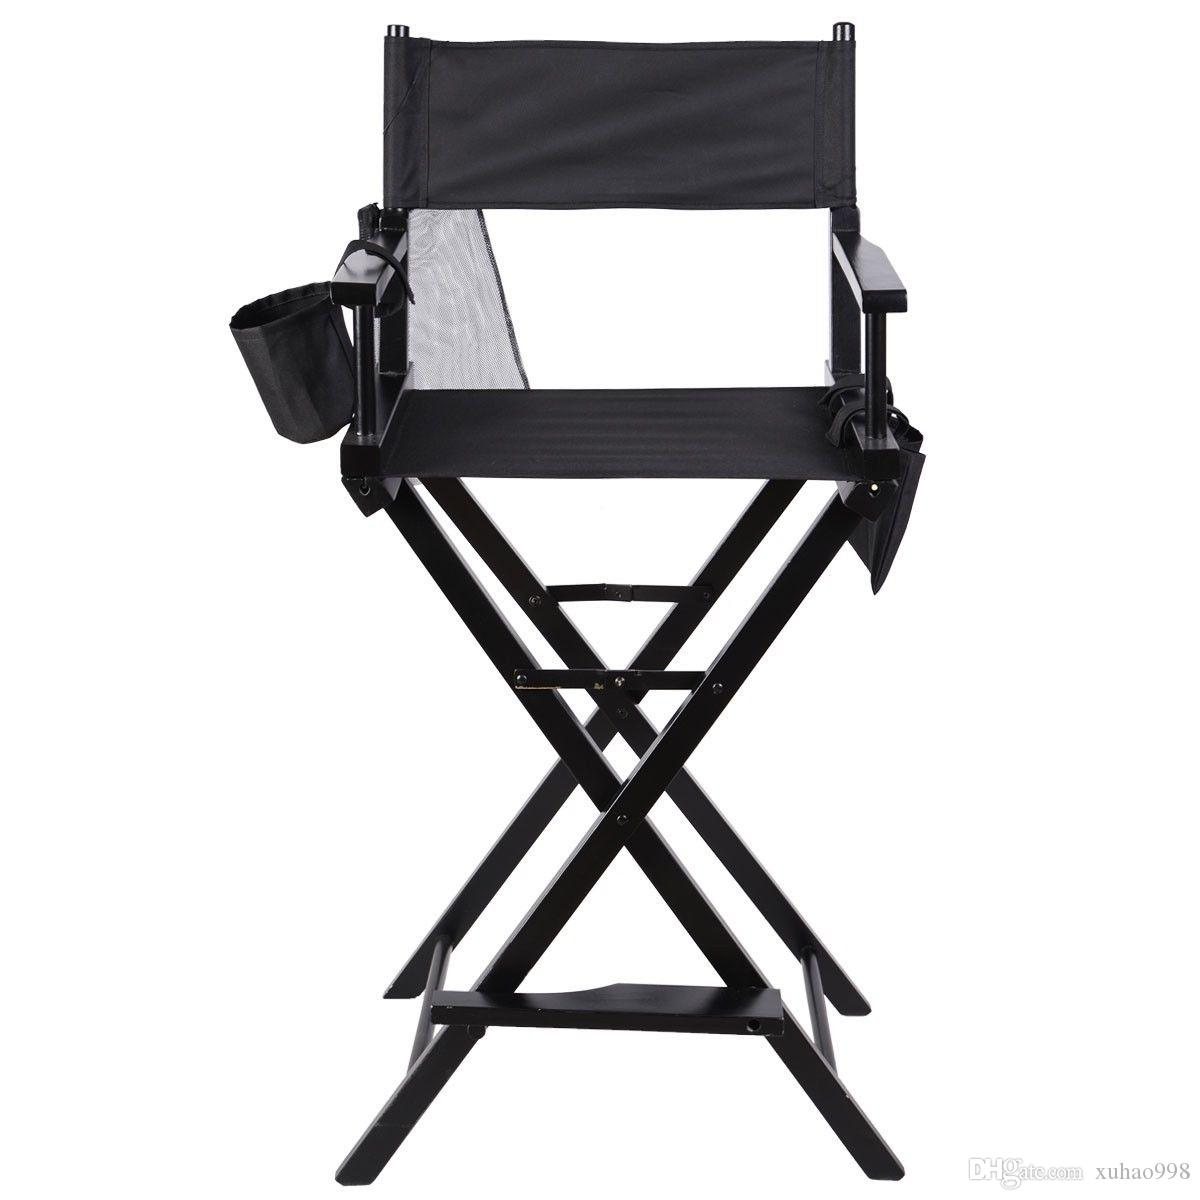 2019 Professional Makeup Artist Directors Chair Wood Light Weight Foldable Black New From Xuhao998, $53.27   DHgate.Com